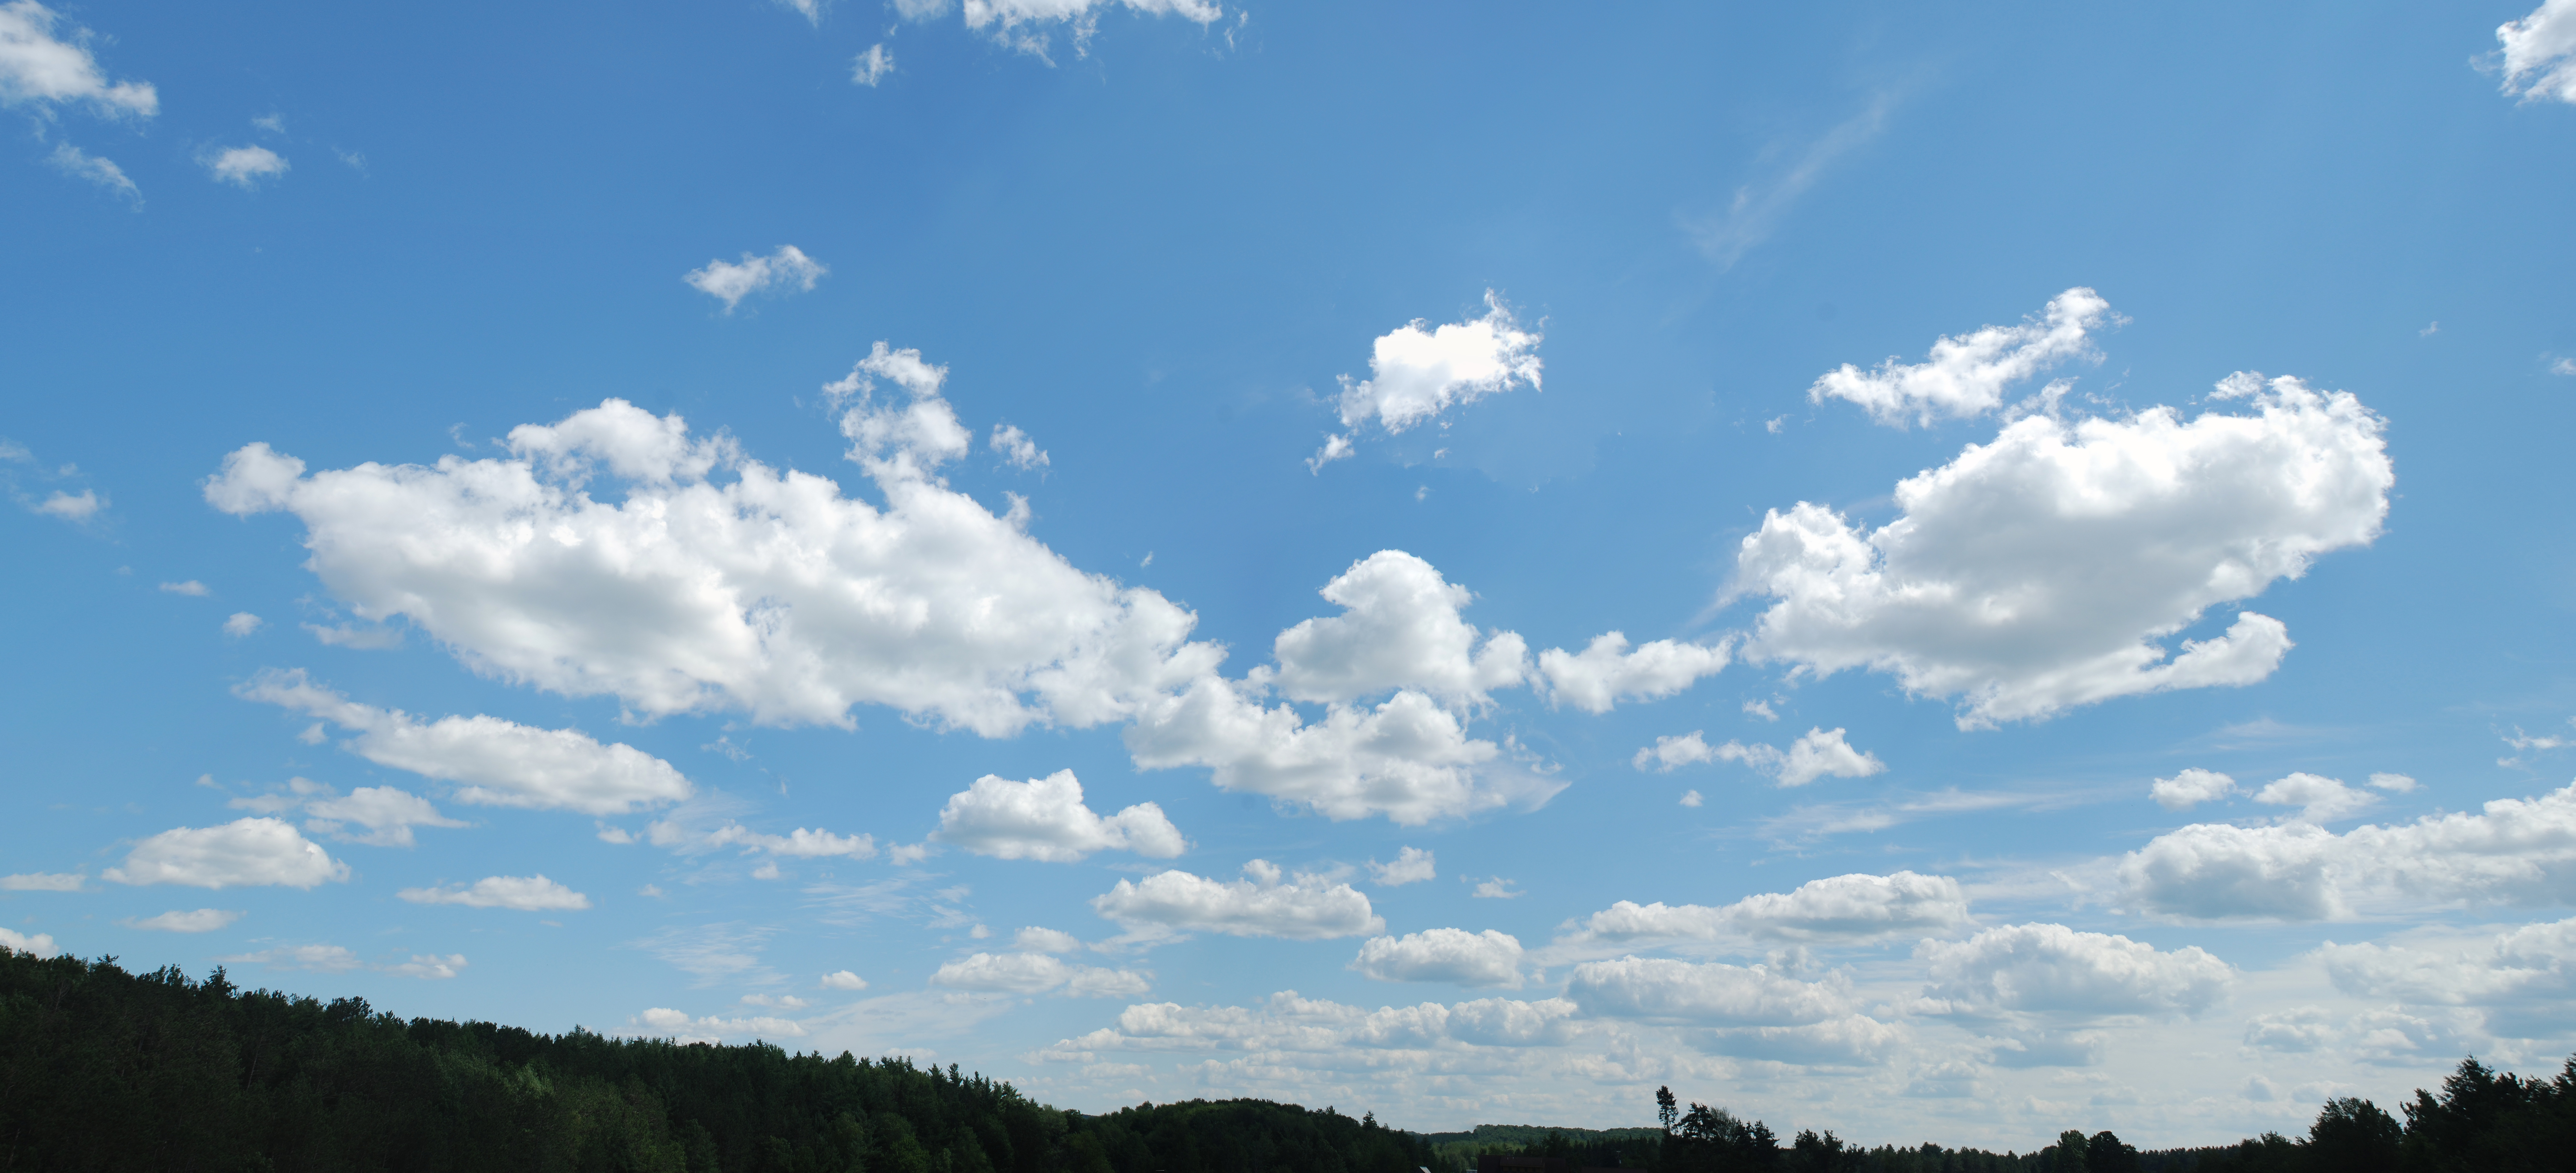 nature - blue sky with cloud